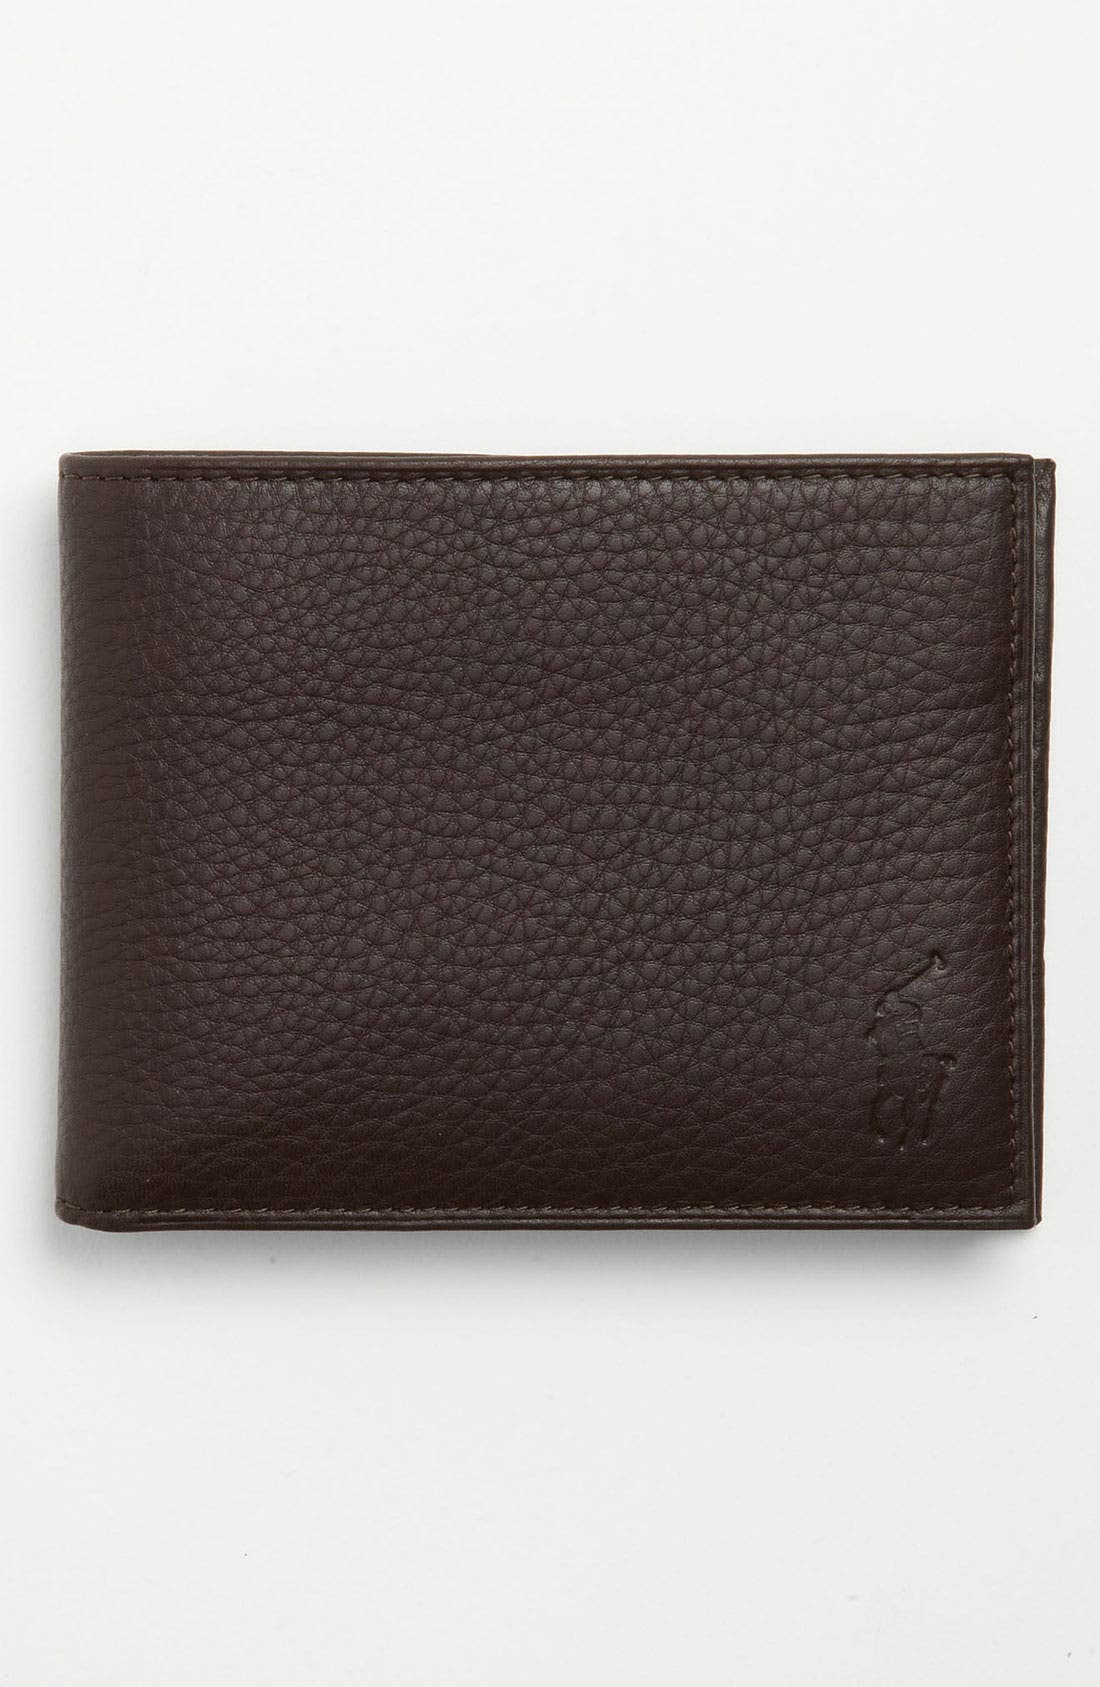 Alternate Image 1 Selected - Polo Ralph Lauren Leather Passcase Wallet